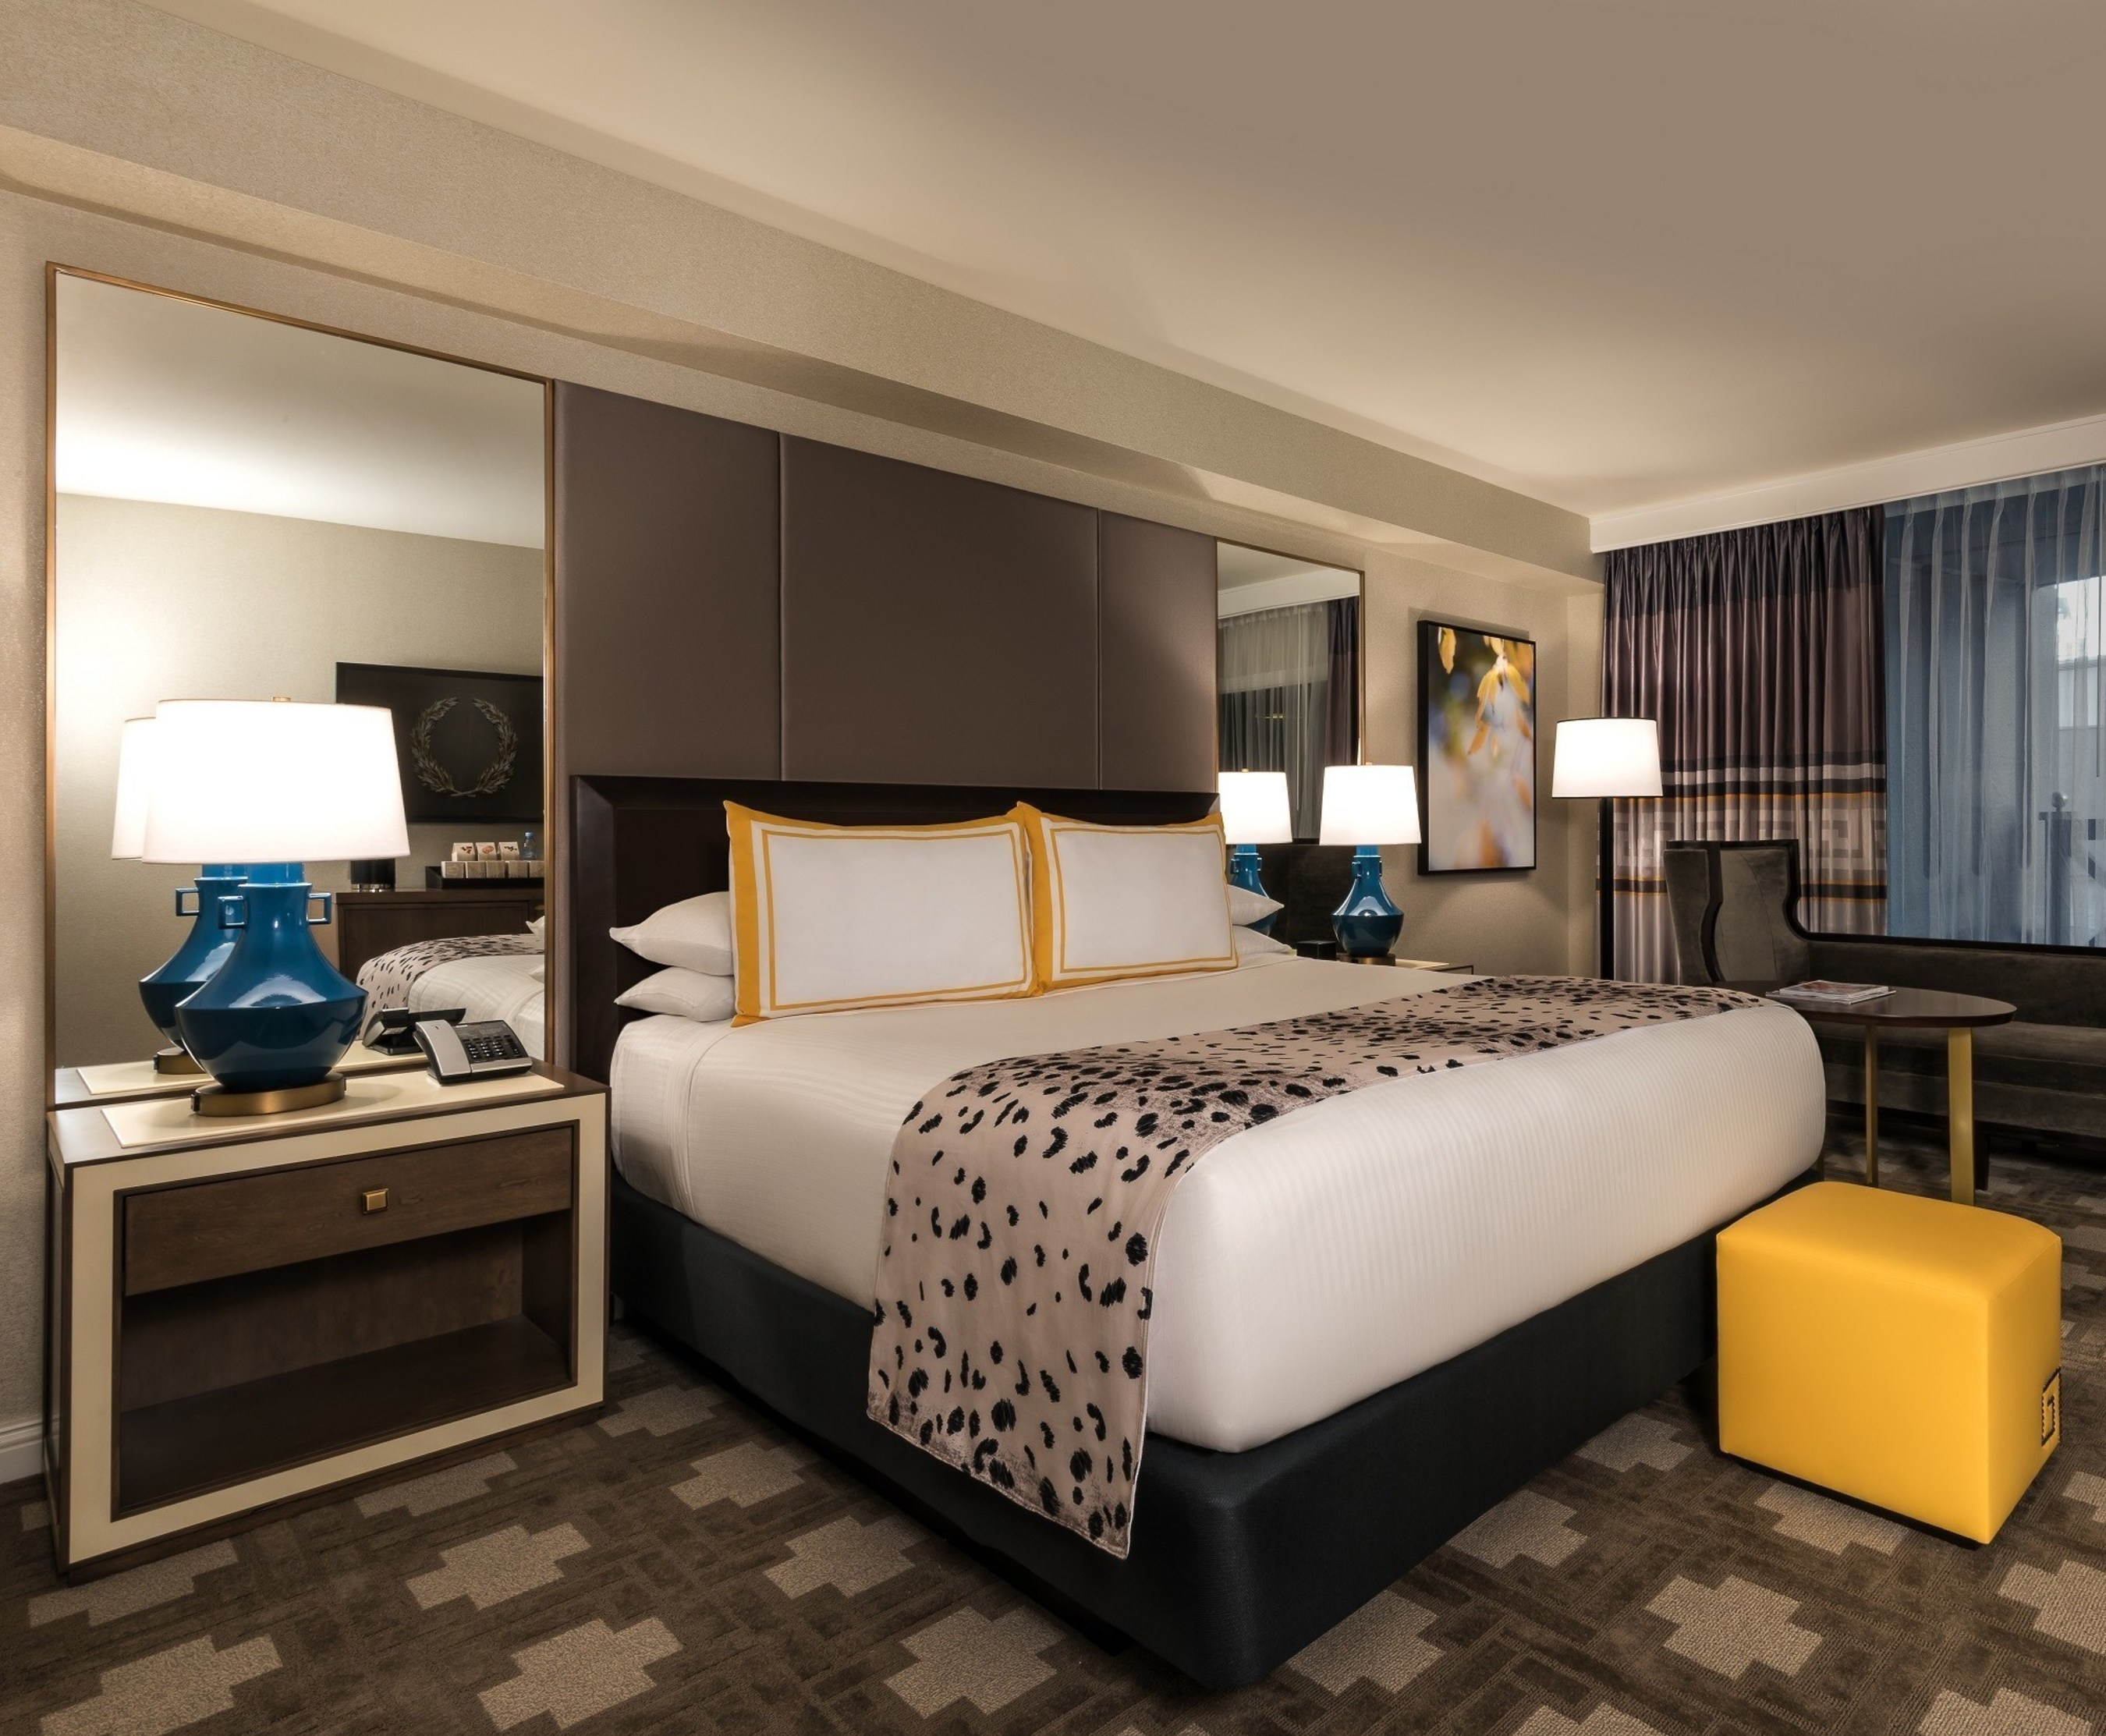 Caesars Entertainment Plans Room Enhancements In Las Vegas, Atlantic City, Gulf Coast and Tunica